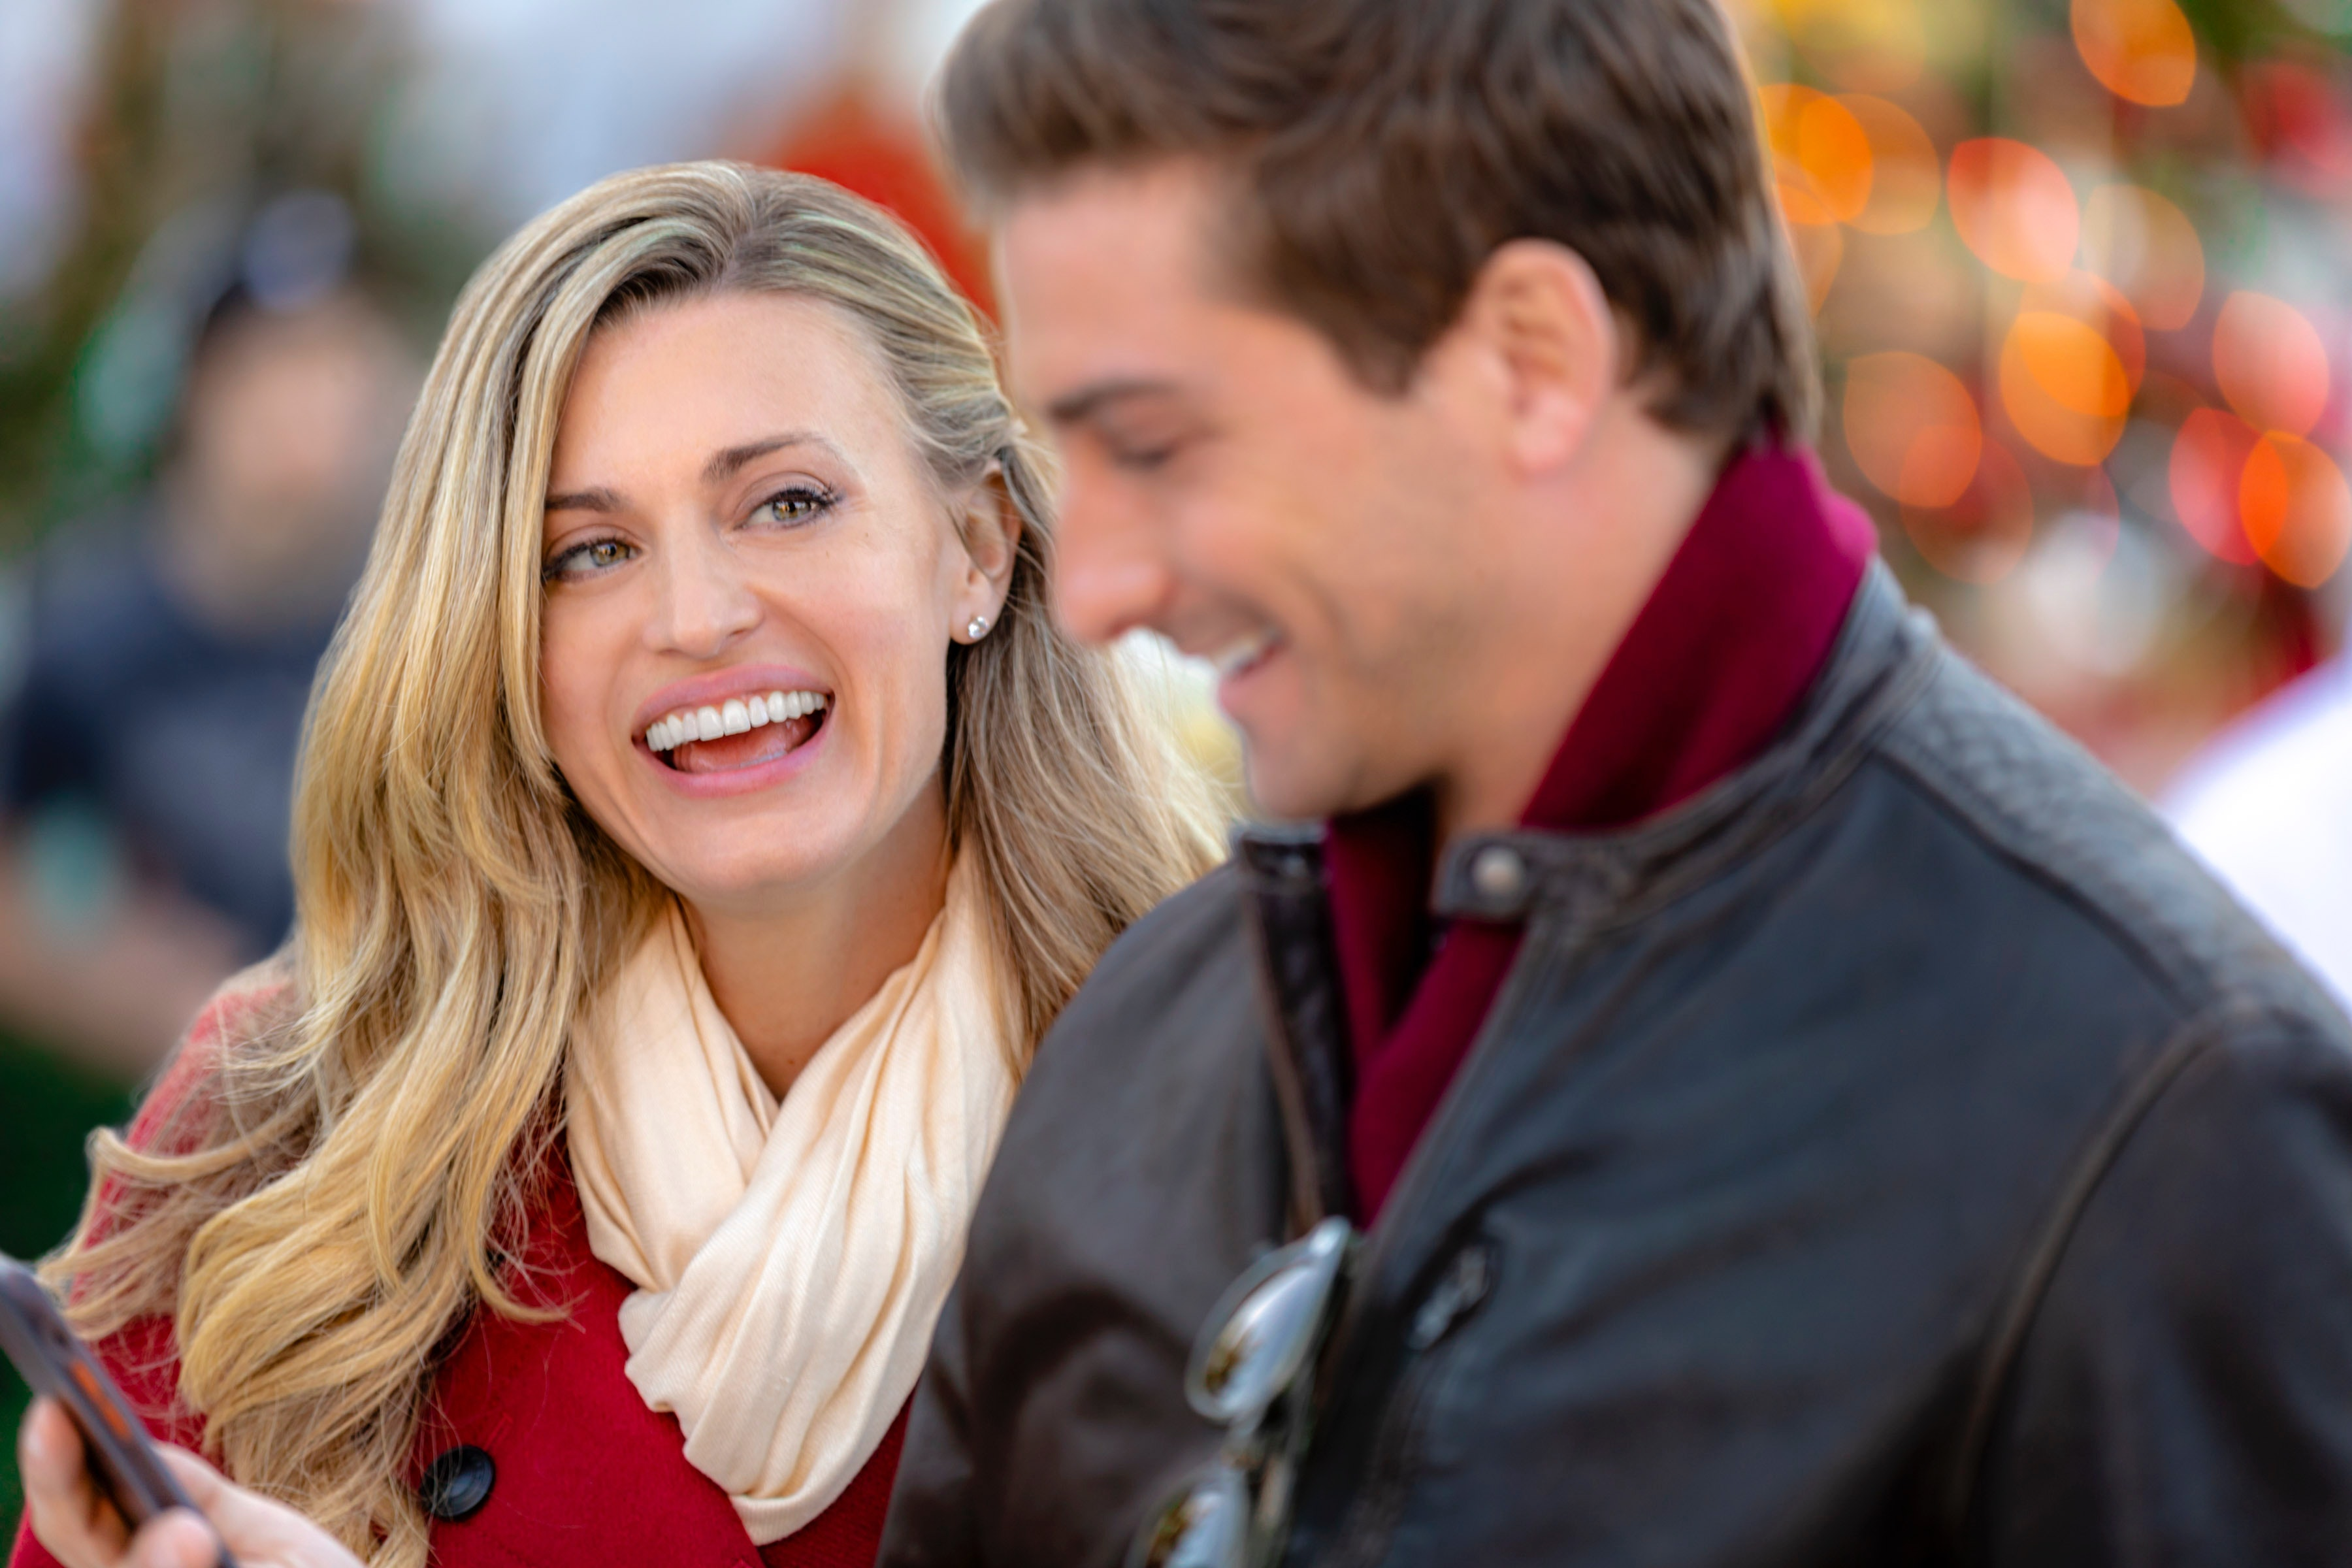 The 2018 Hallmark Christmas Movies Starring Your Favorite CW Stars ...